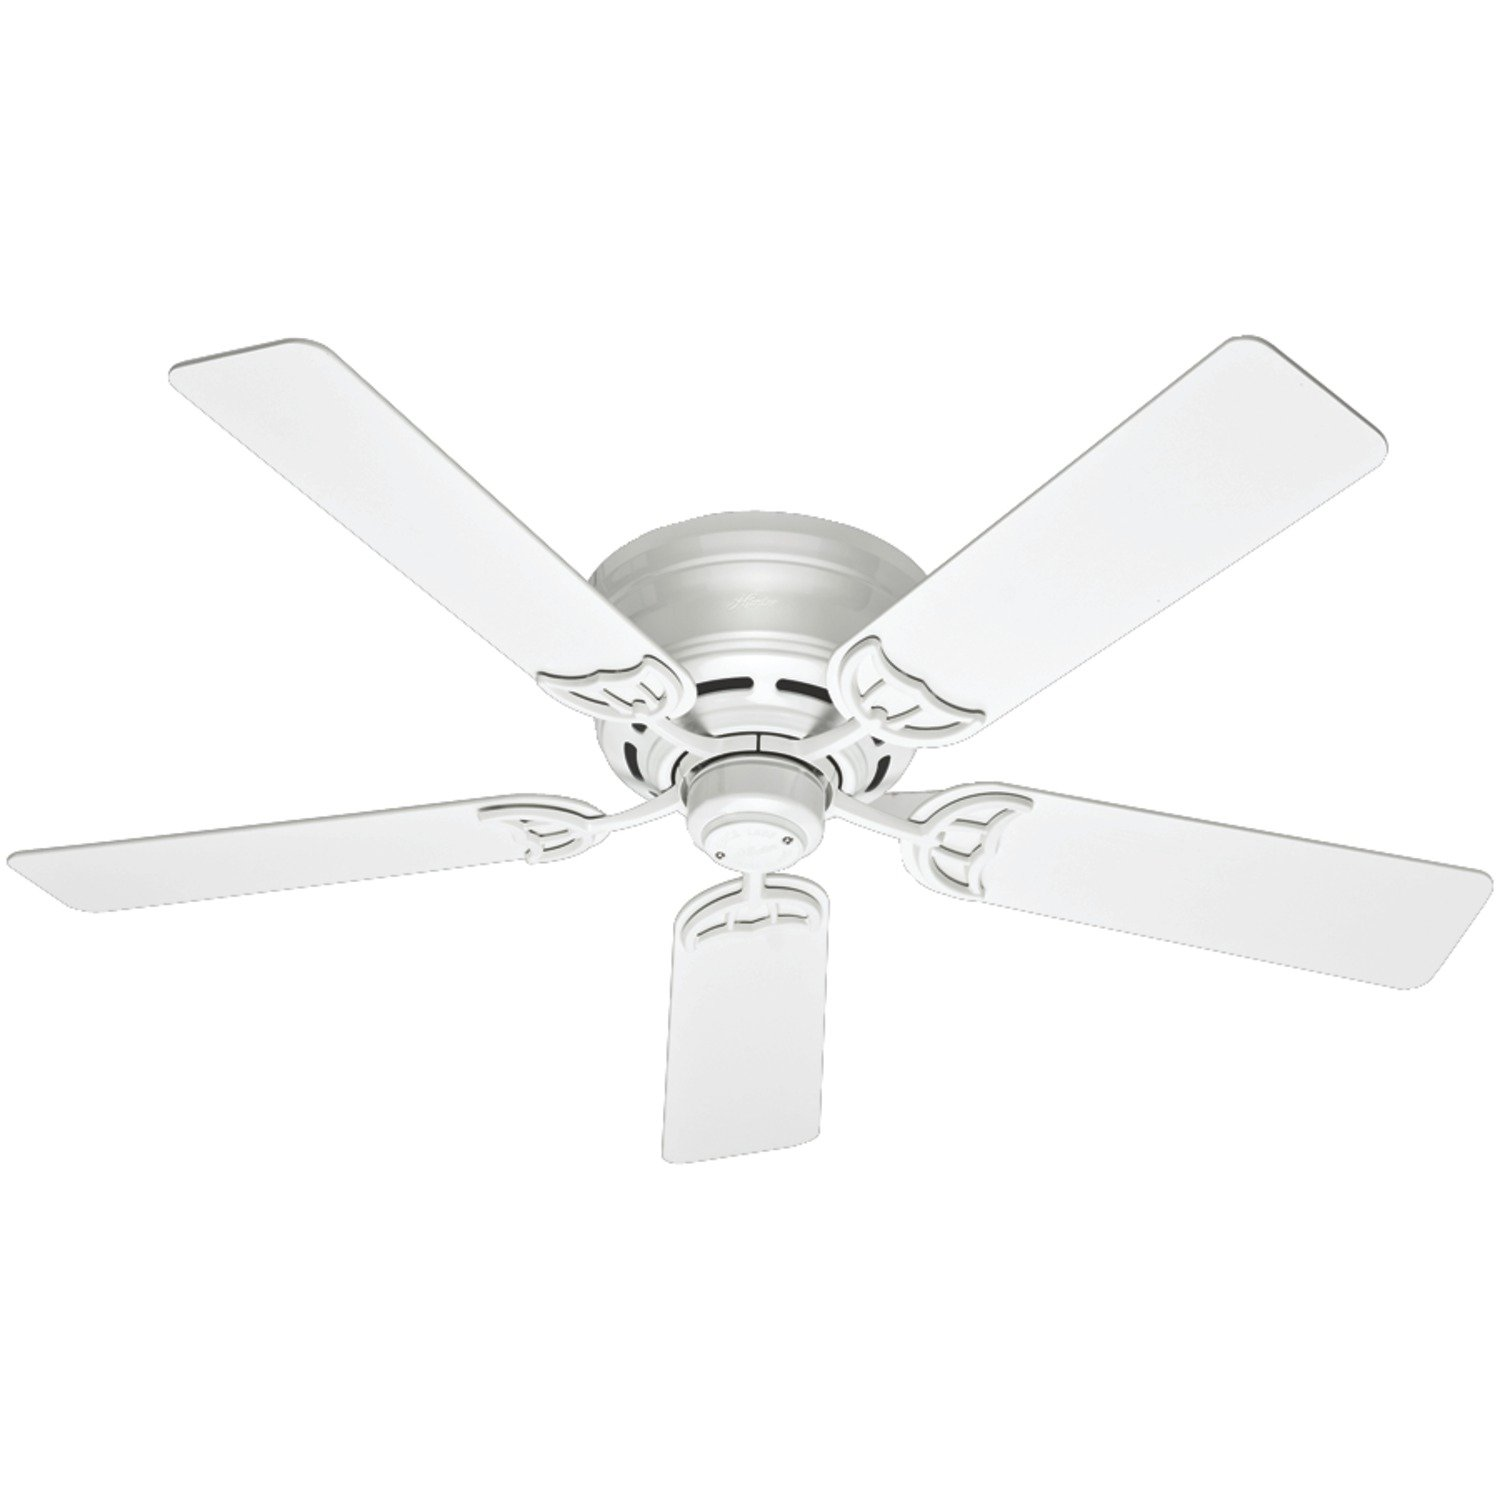 Hunter 53069 Low Profile III 52-Inch Ceiling Fan with Five White Blades, White Hunter Fan Company